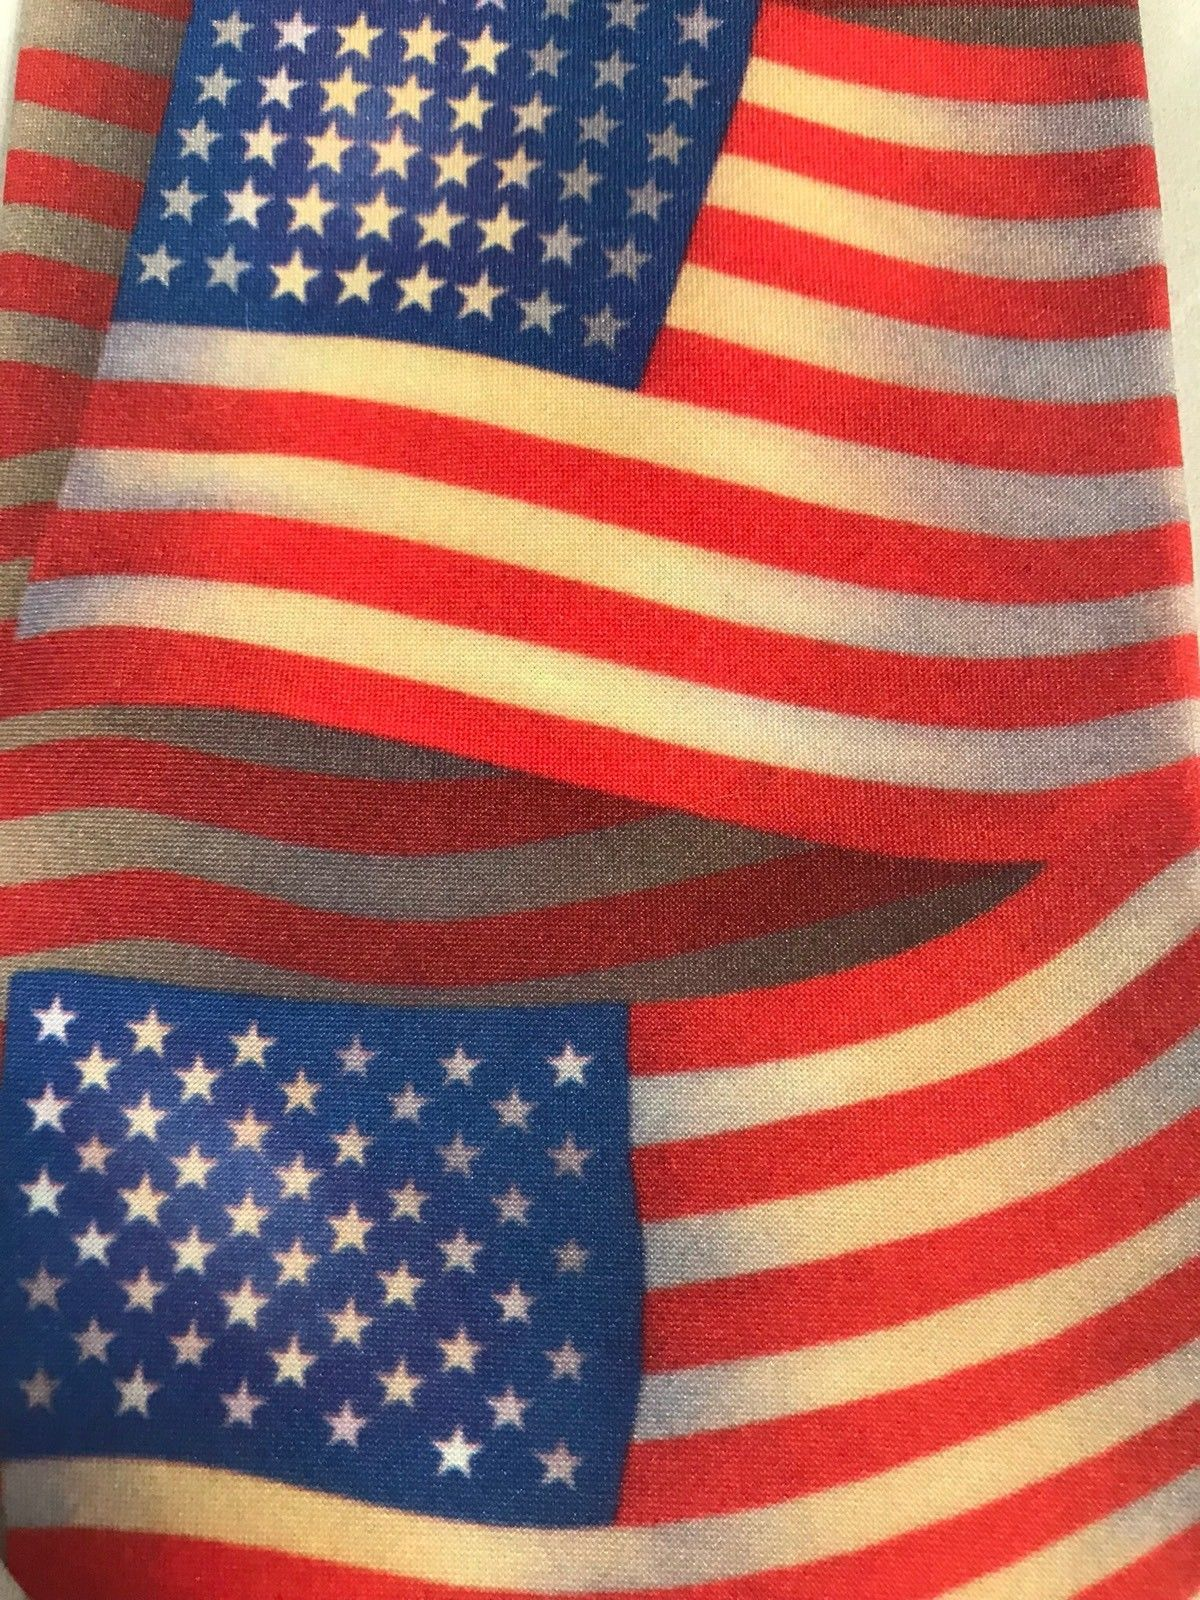 Ralph Marlin History of American Flags Patriotic 4th of July Neck Tie 1998 USA image 2